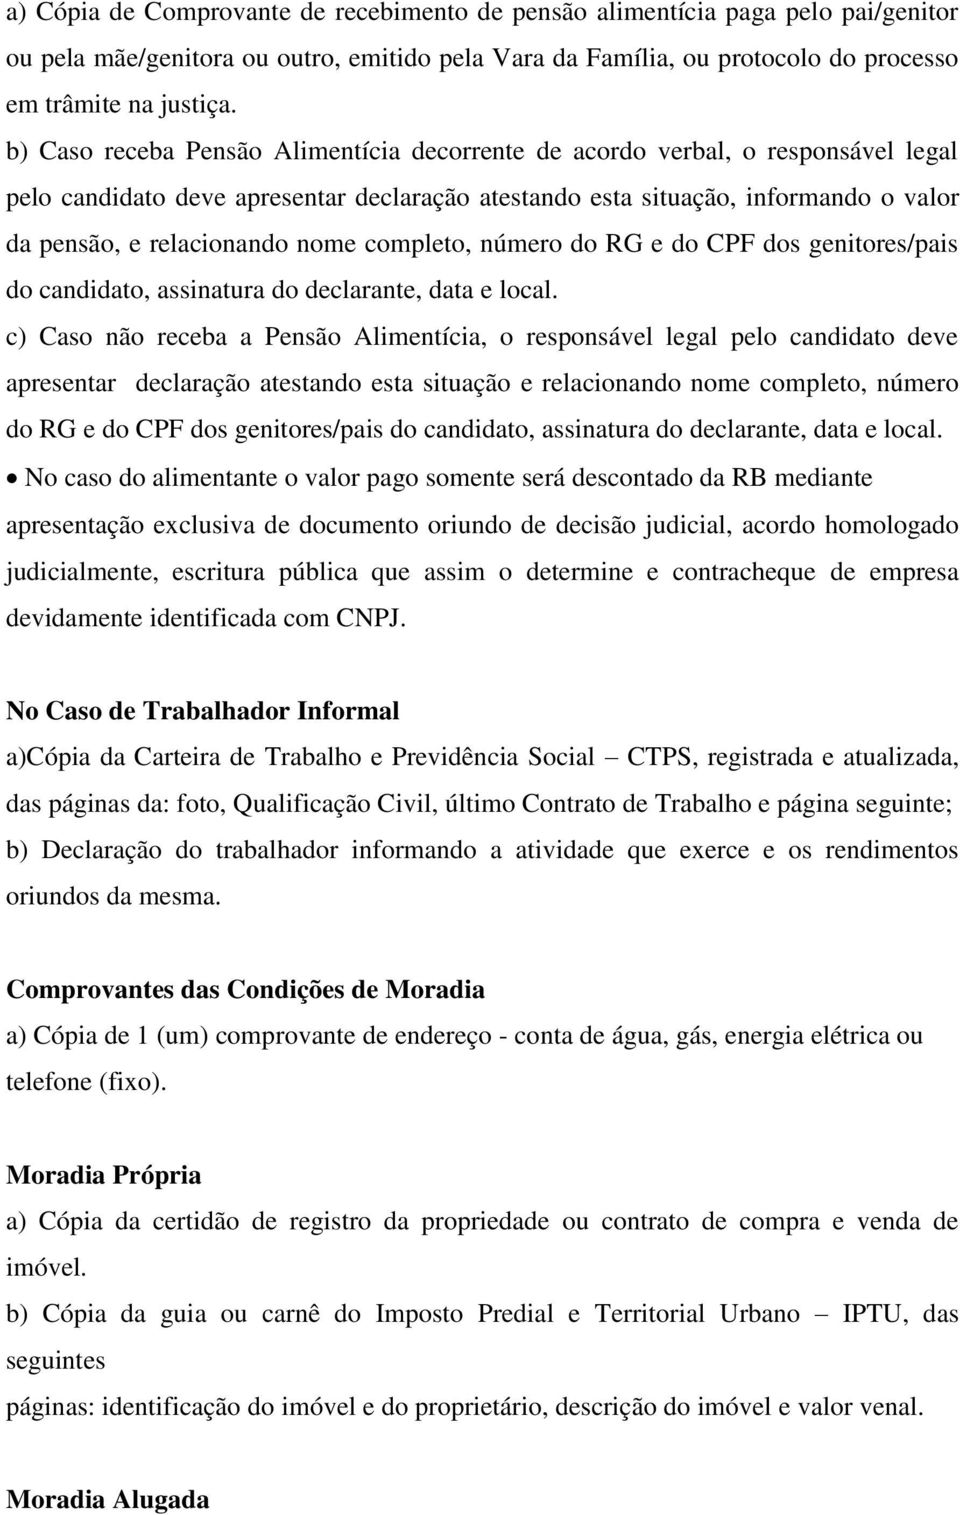 completo, número do RG e do CPF dos genitores/pais do candidato, assinatura do declarante, data e local.